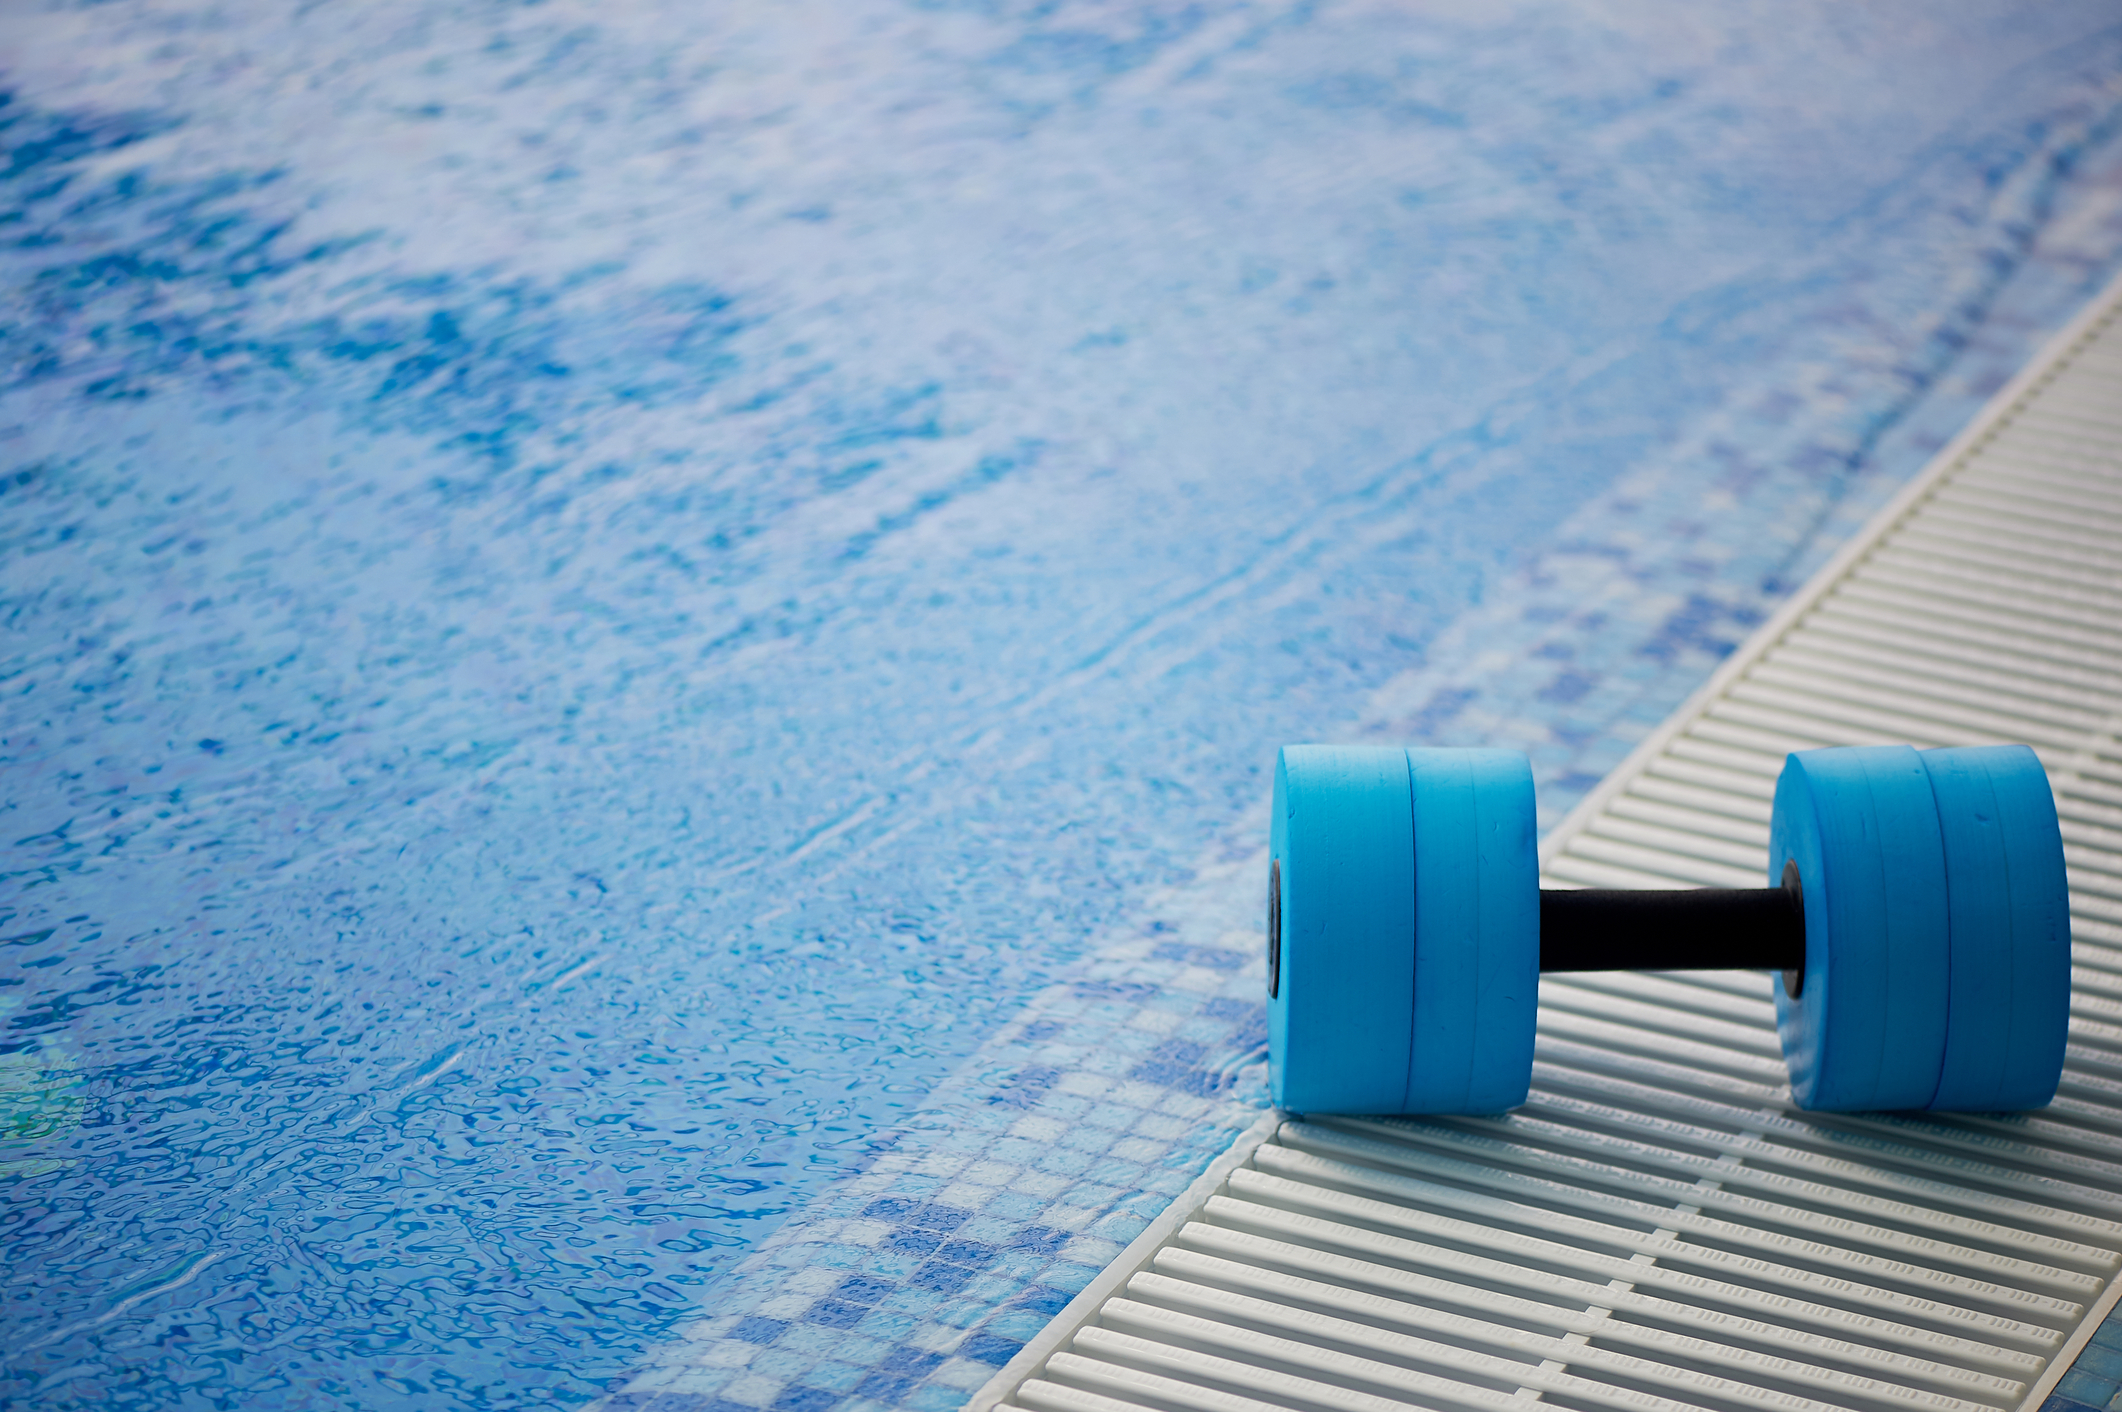 Dumbbell and swimming pool for aquatic exercise routine at home